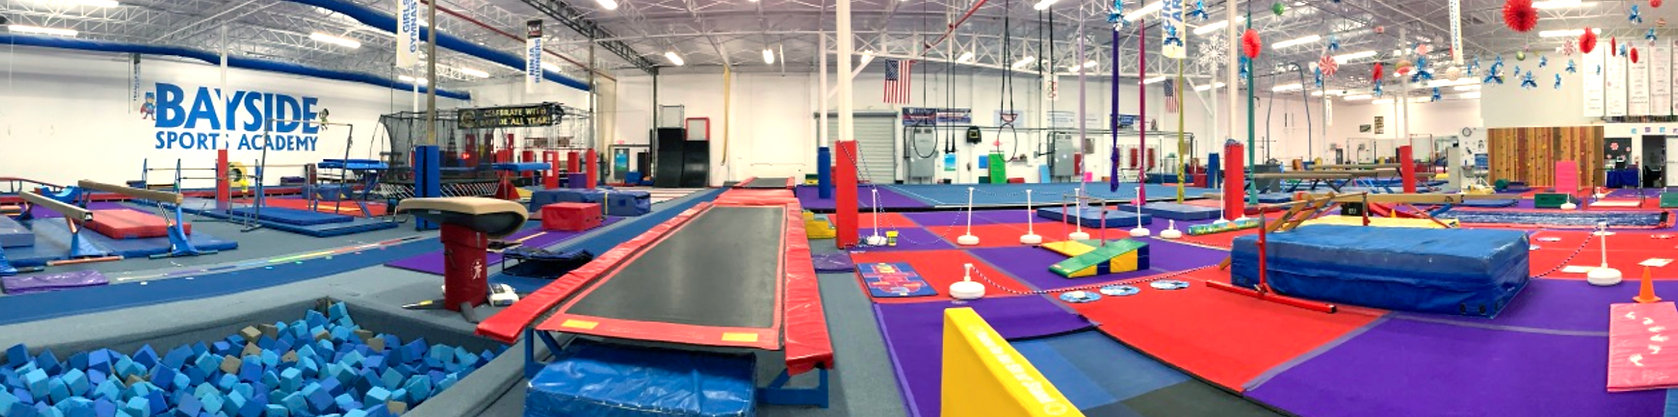 Sports Academy Gym in Saint Petersburg, Florida